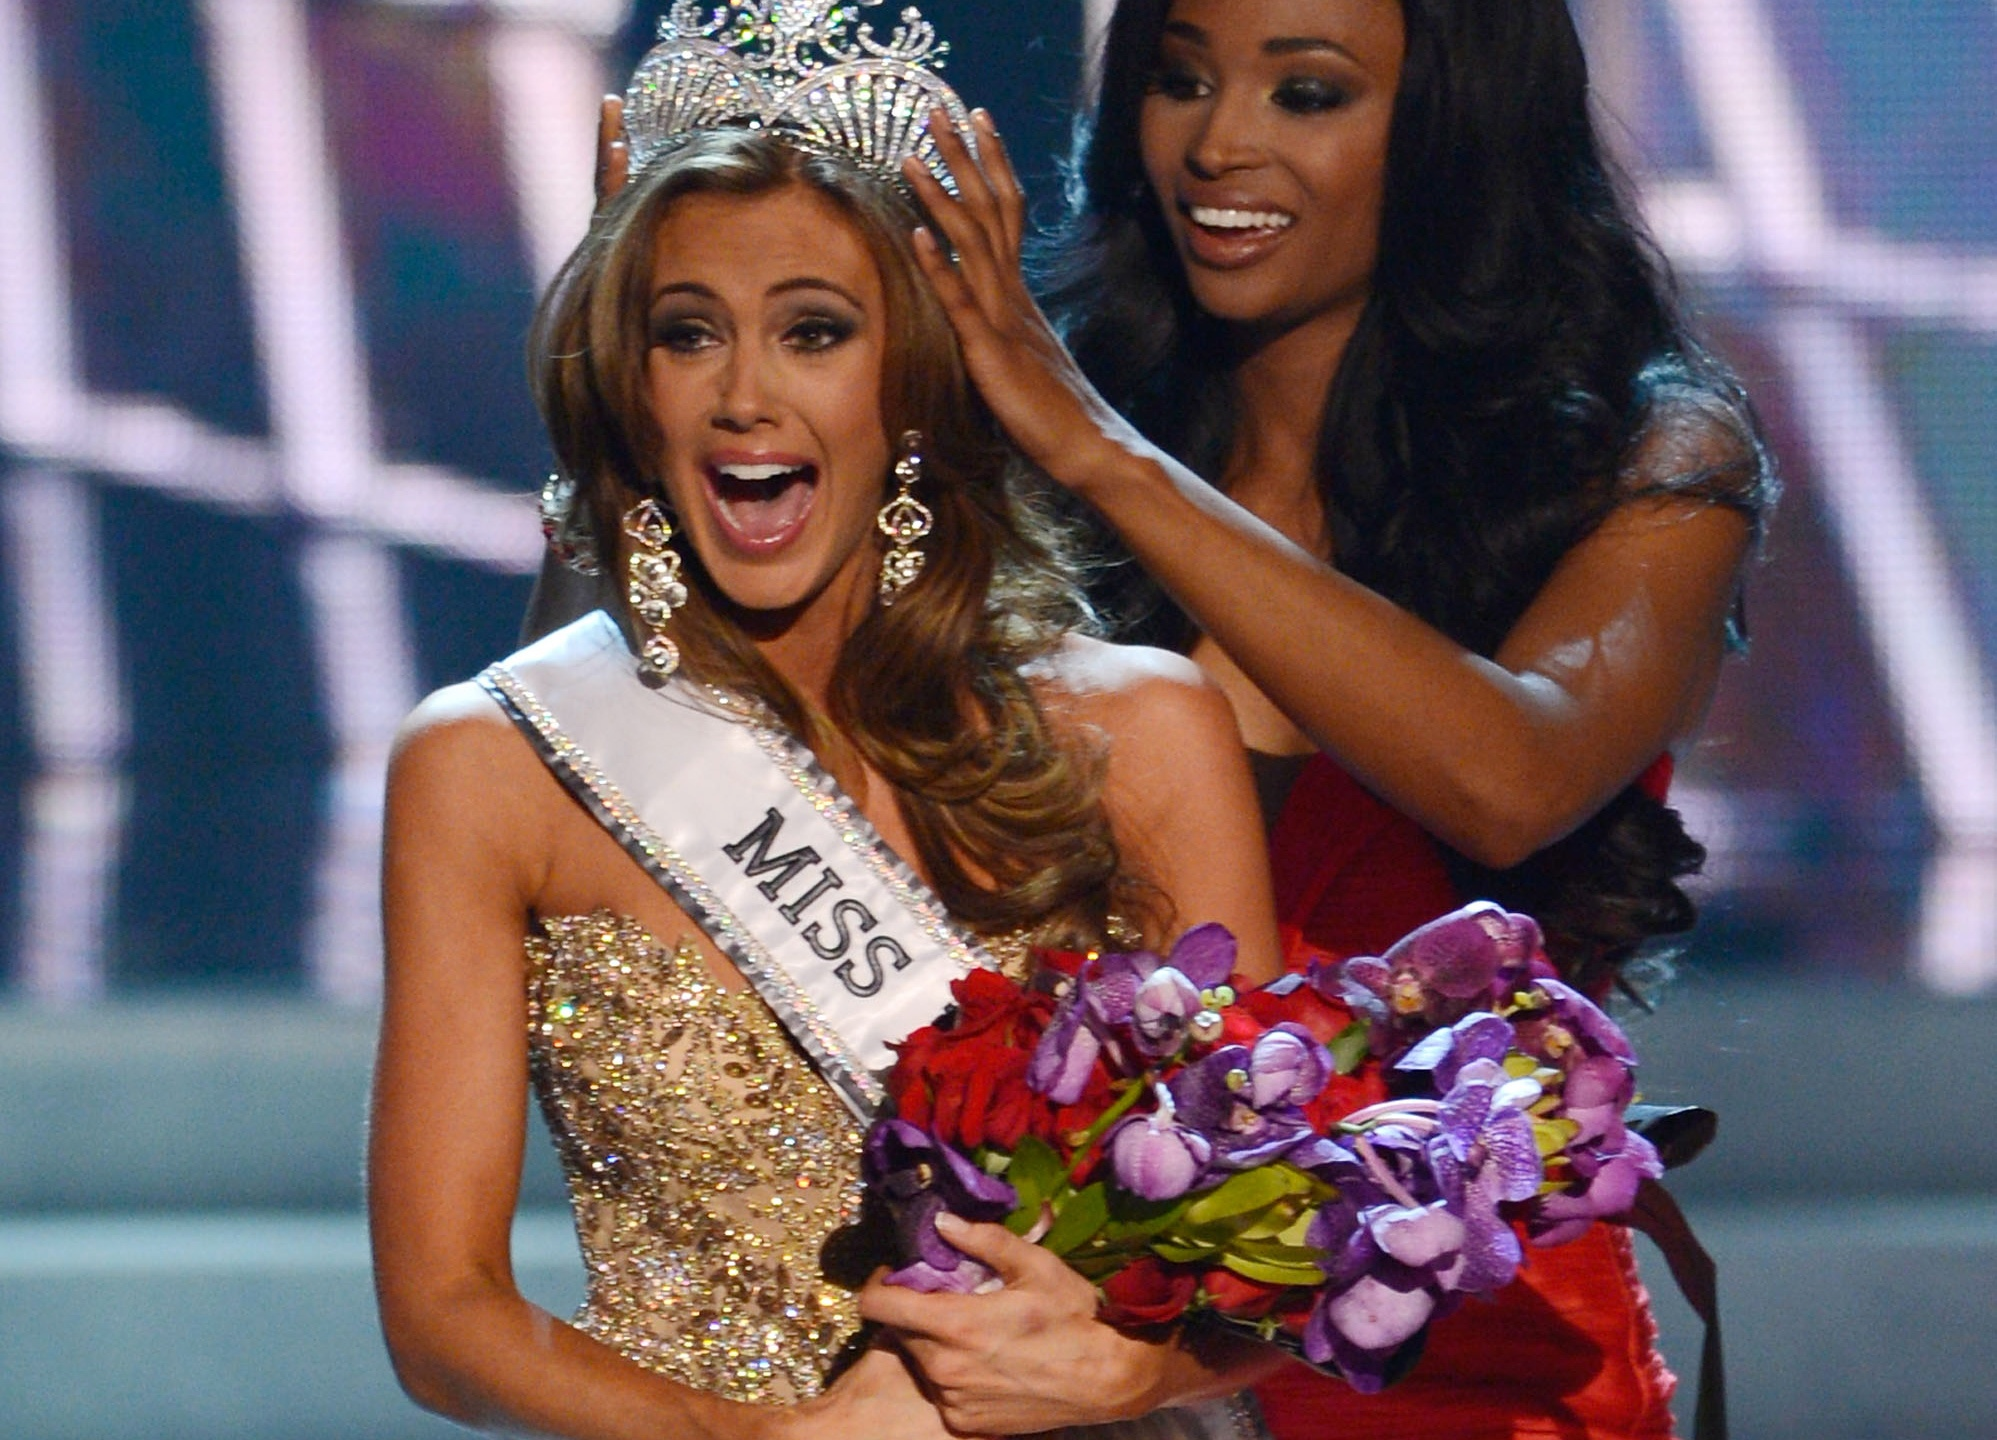 In this Sunday, June 16, 2013, file photo, Miss Connecticut Erin Brady is crowned the winner of the Miss USA 2013 pageant by Nana Meriwether in Las Vegas